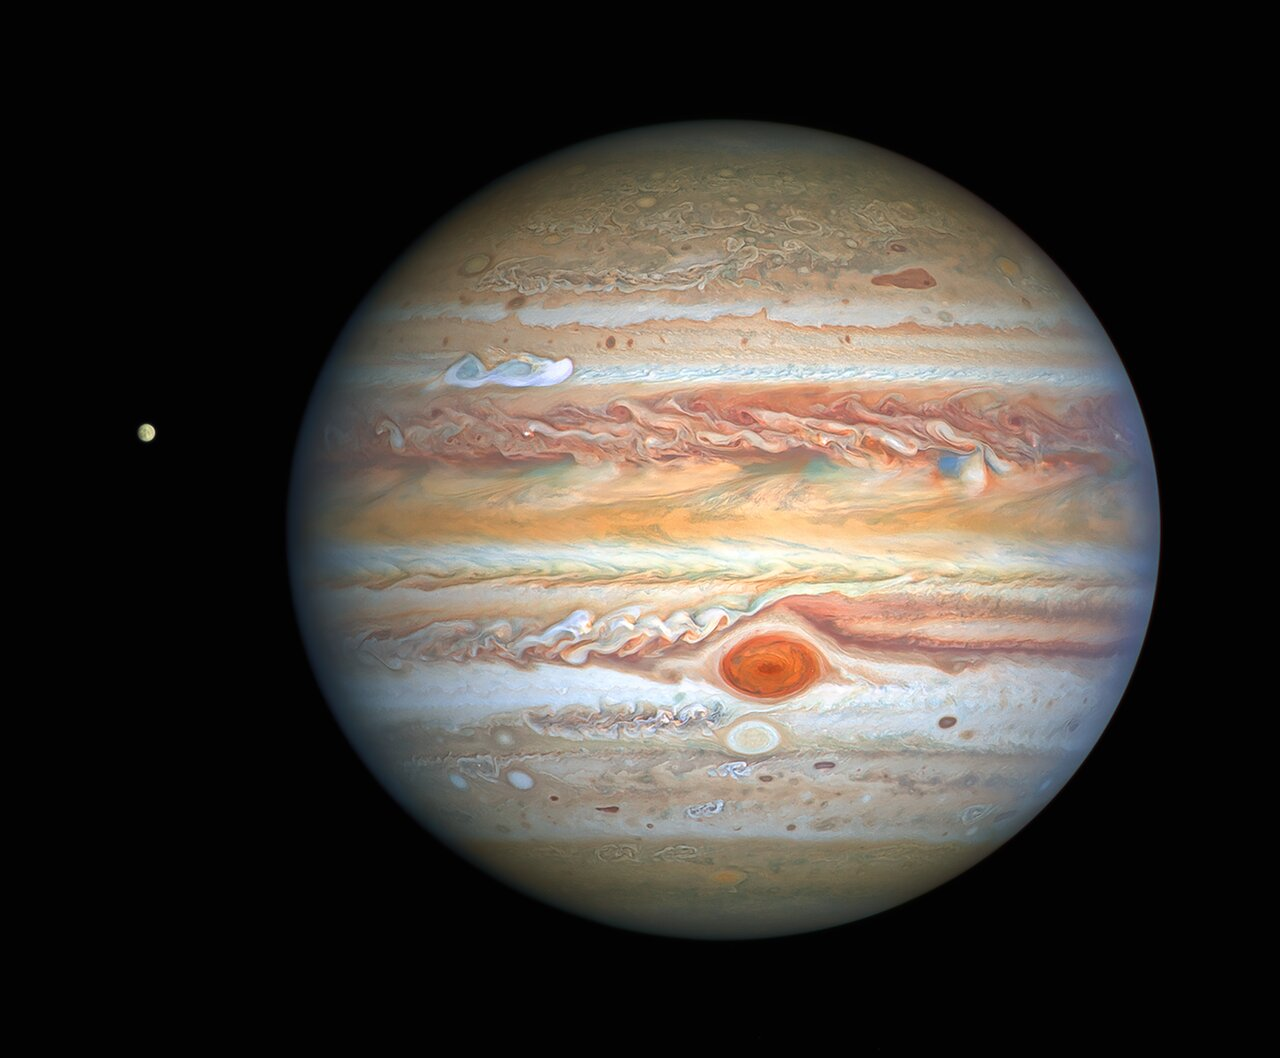 Photo Release: Hubble Captures Crisp New Image of Jupiter and Europa